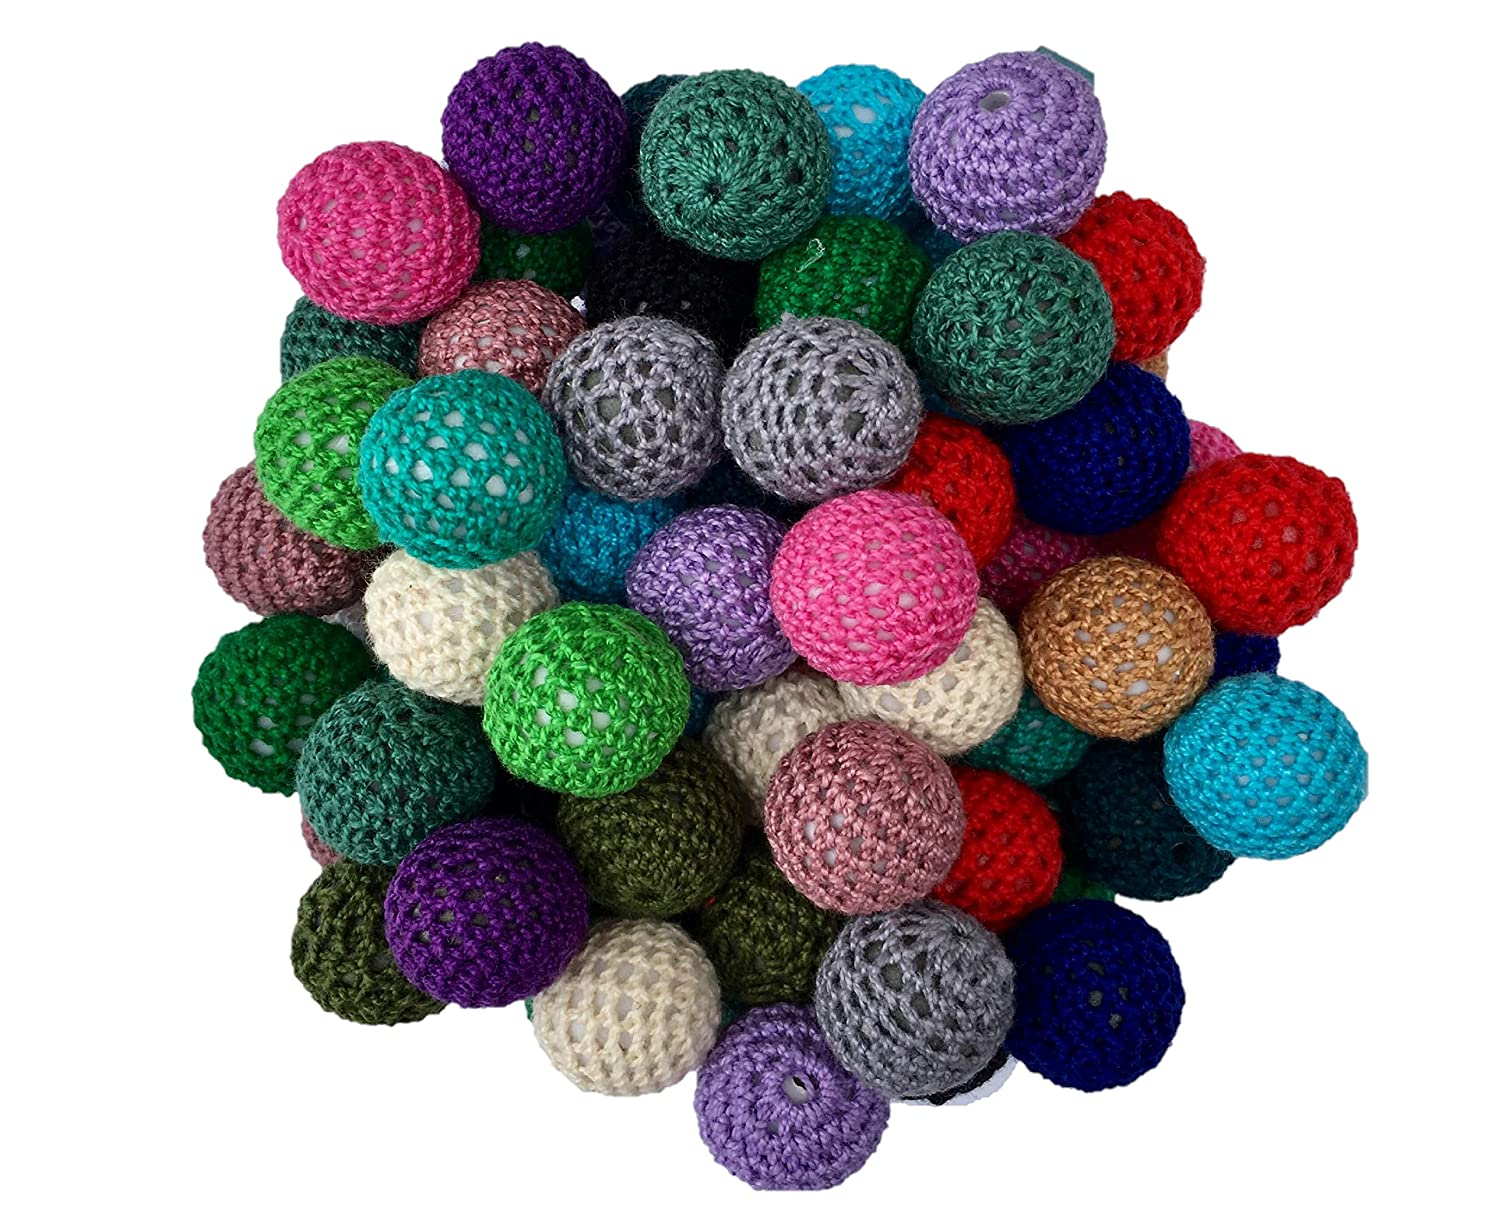 20mm Crochet Beads 50 Count Mixed Pack Chunky Bubble Gum Beads